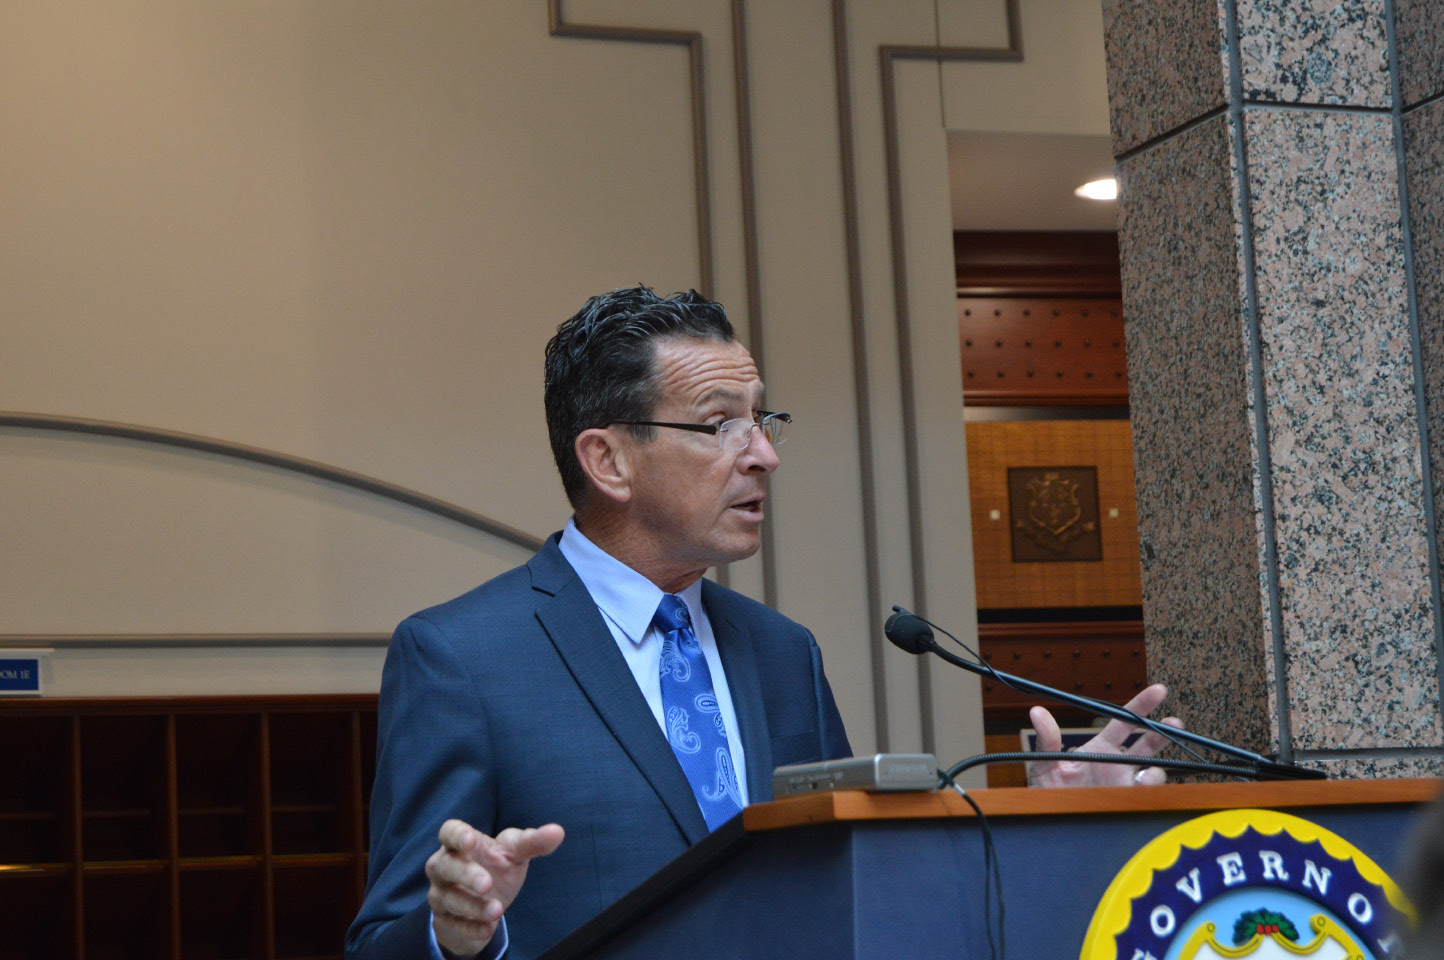 Gov. Dannel P. Malloy on Friday, May 12. | Mike Savino, Record-Journal staff